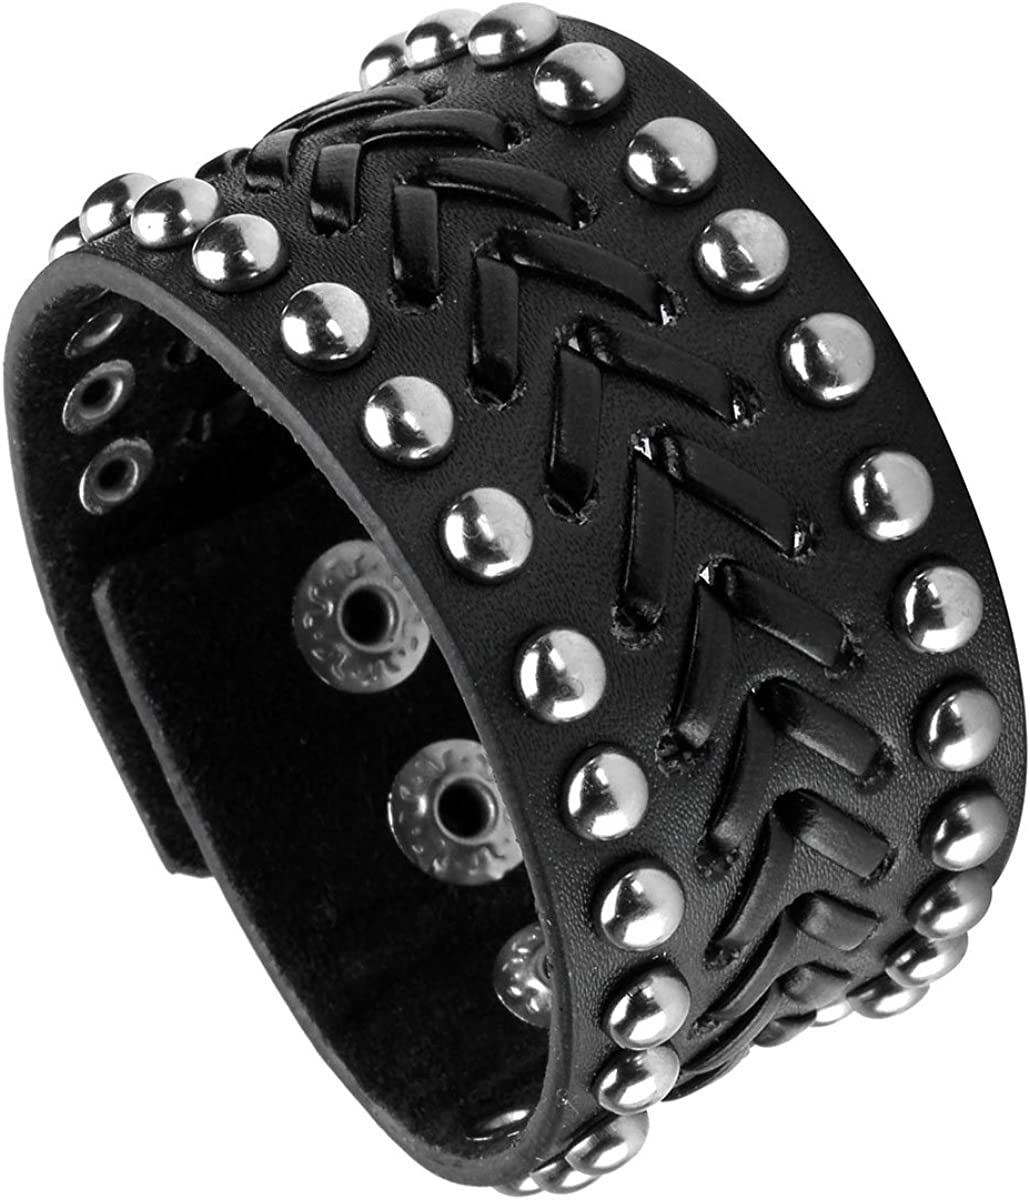 EIGSO Vintage Spike Studded Rock Punk Biker Wide Strap Leather Bracelet Goth Rivet Buckle Wristband